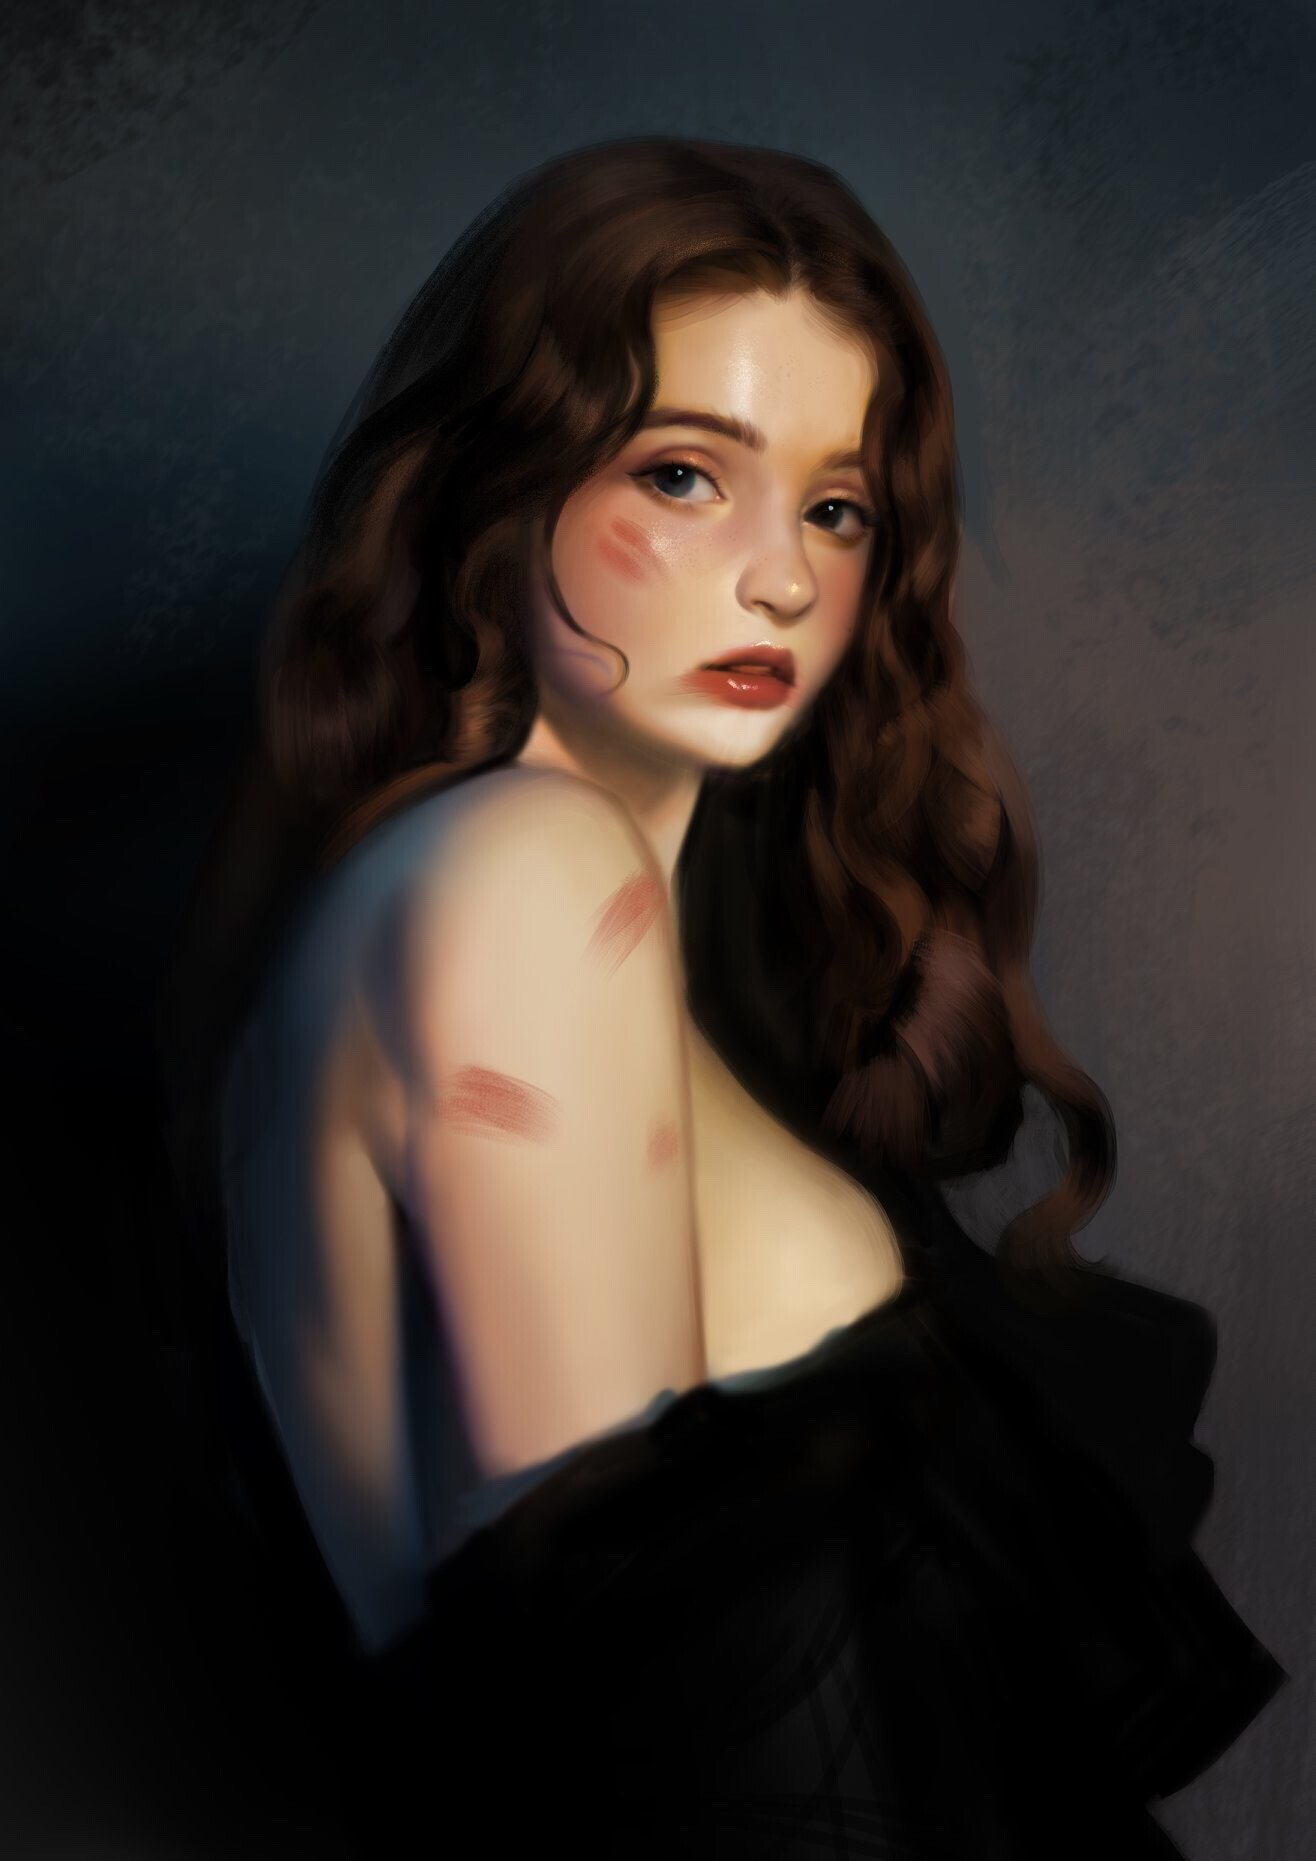 Red Lips and facemark gril portrait by ryeowon kwon